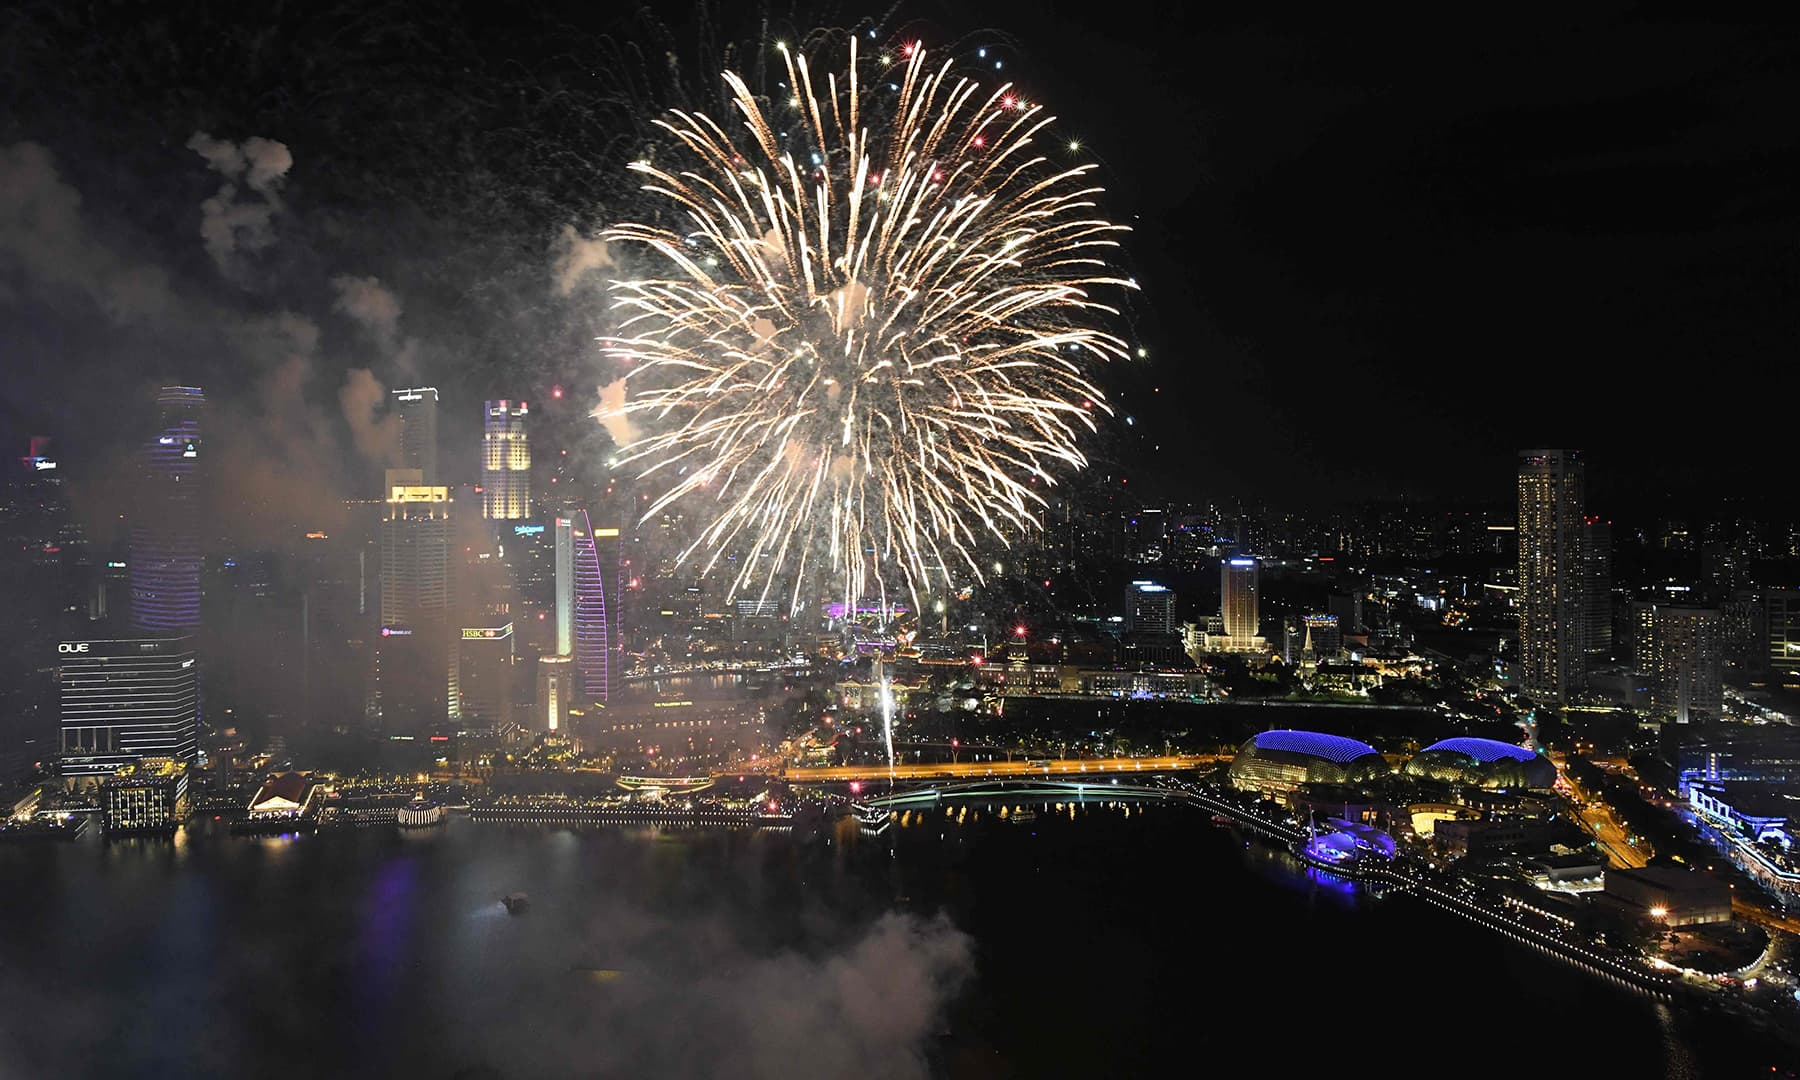 Fireworks burst over the water of Marina Bay during the eve of the New Year before the main countdown celebration in Singapore. — AFP